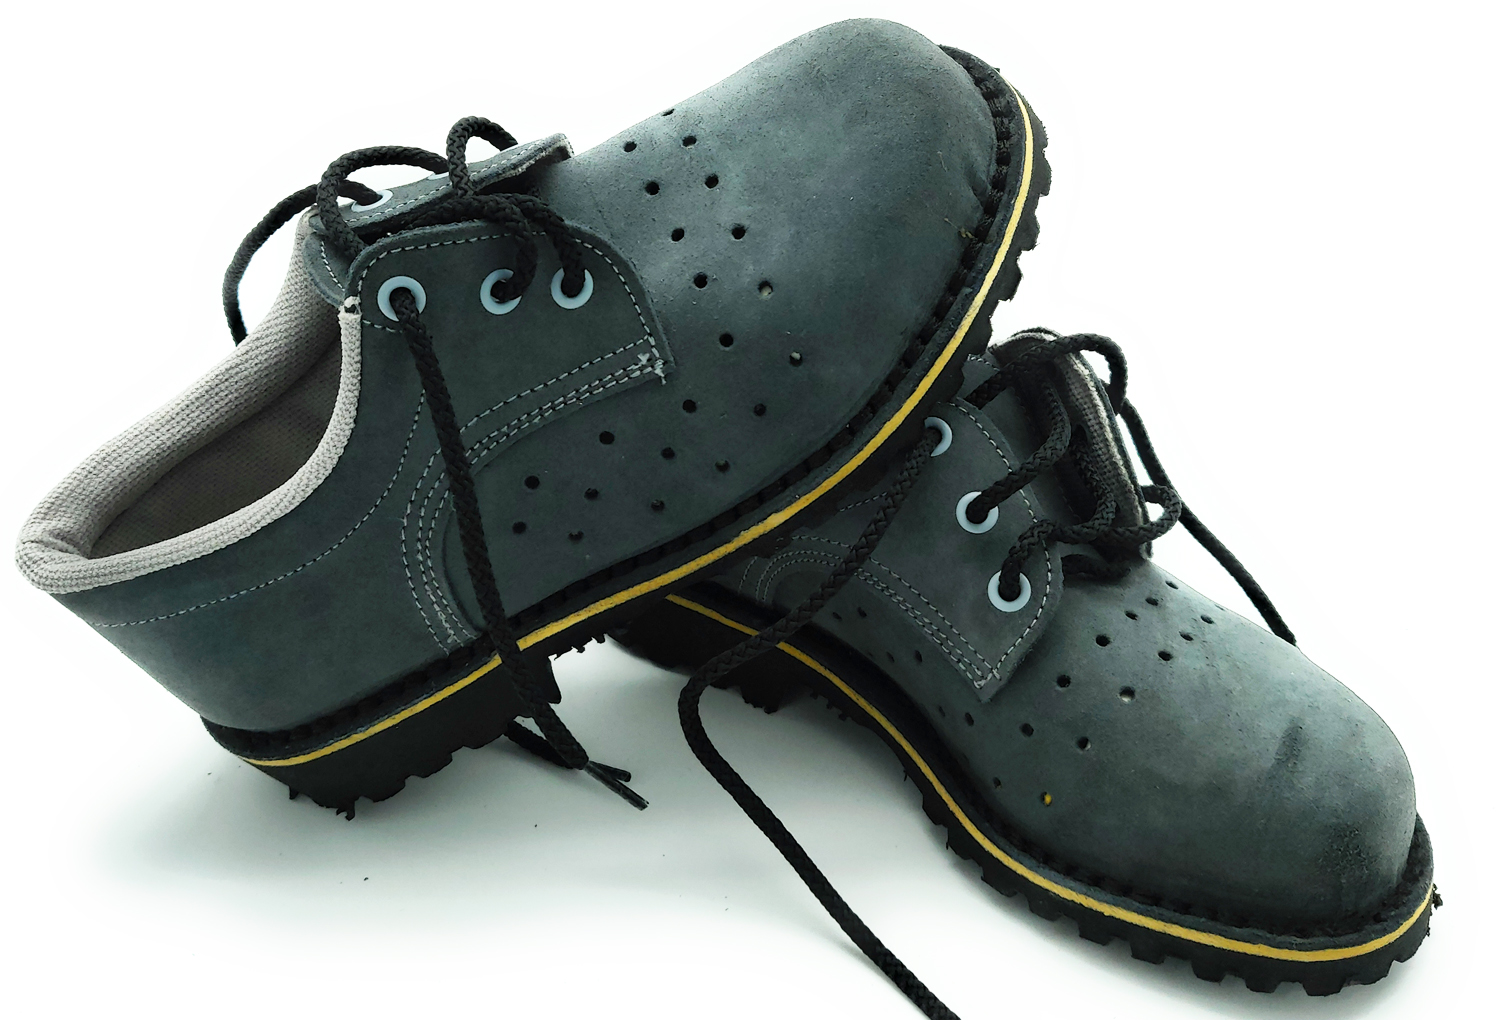 Shoes safety waterproof odor control external holes for breathability